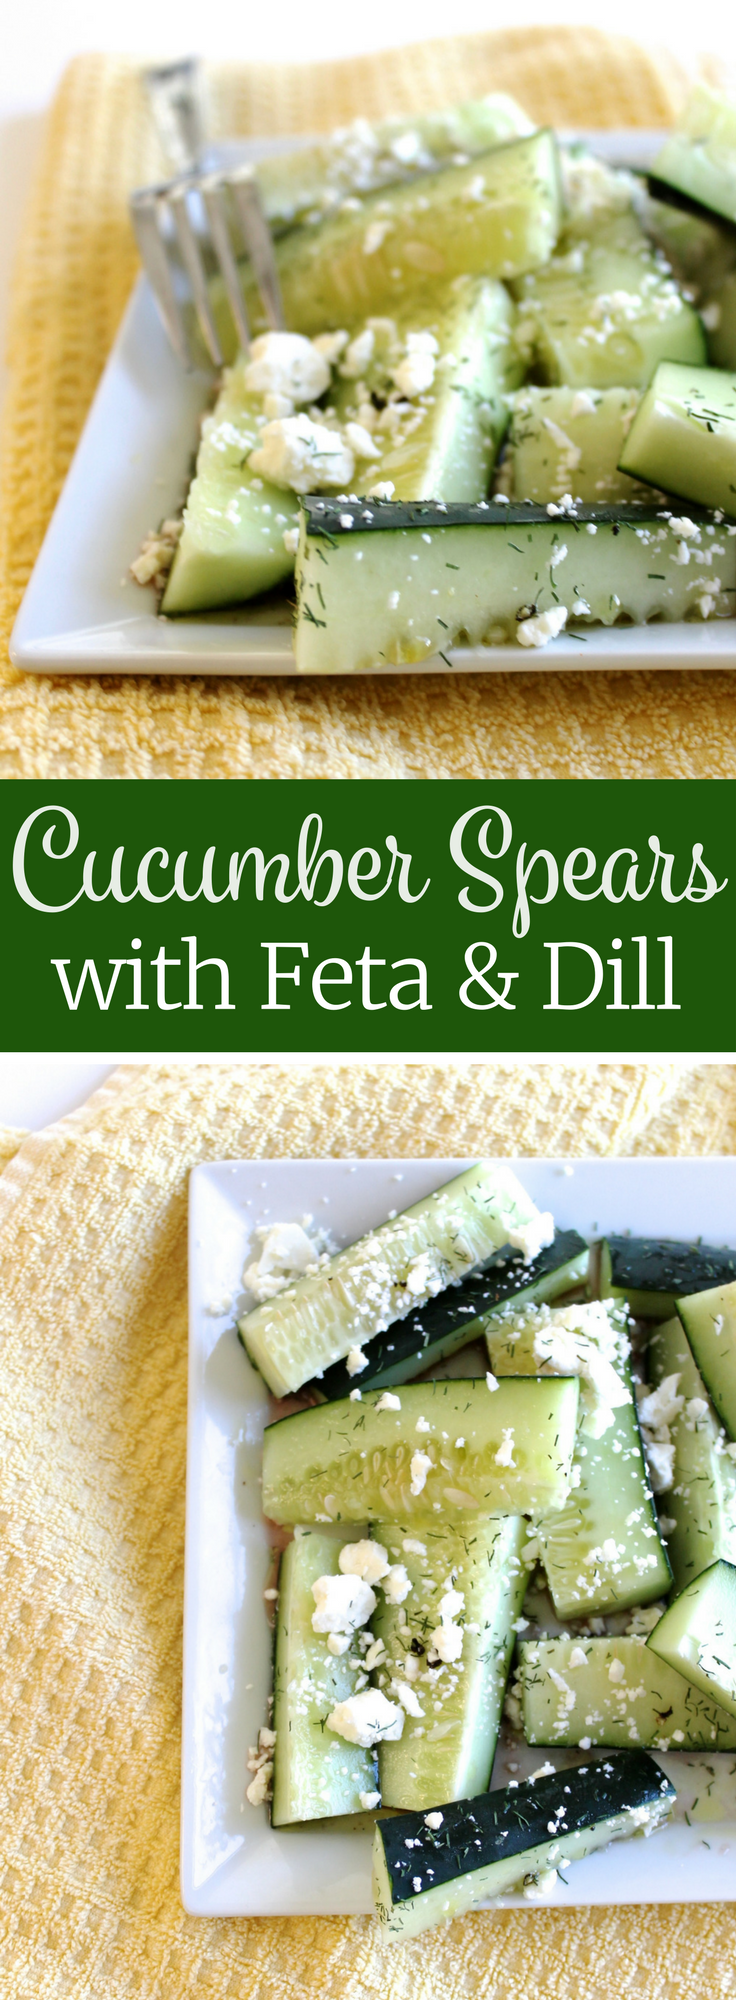 Try this healthy, low-calorie snack: Cucumber Spears with Feta and Dill ll www.littlechefbigappetite.com